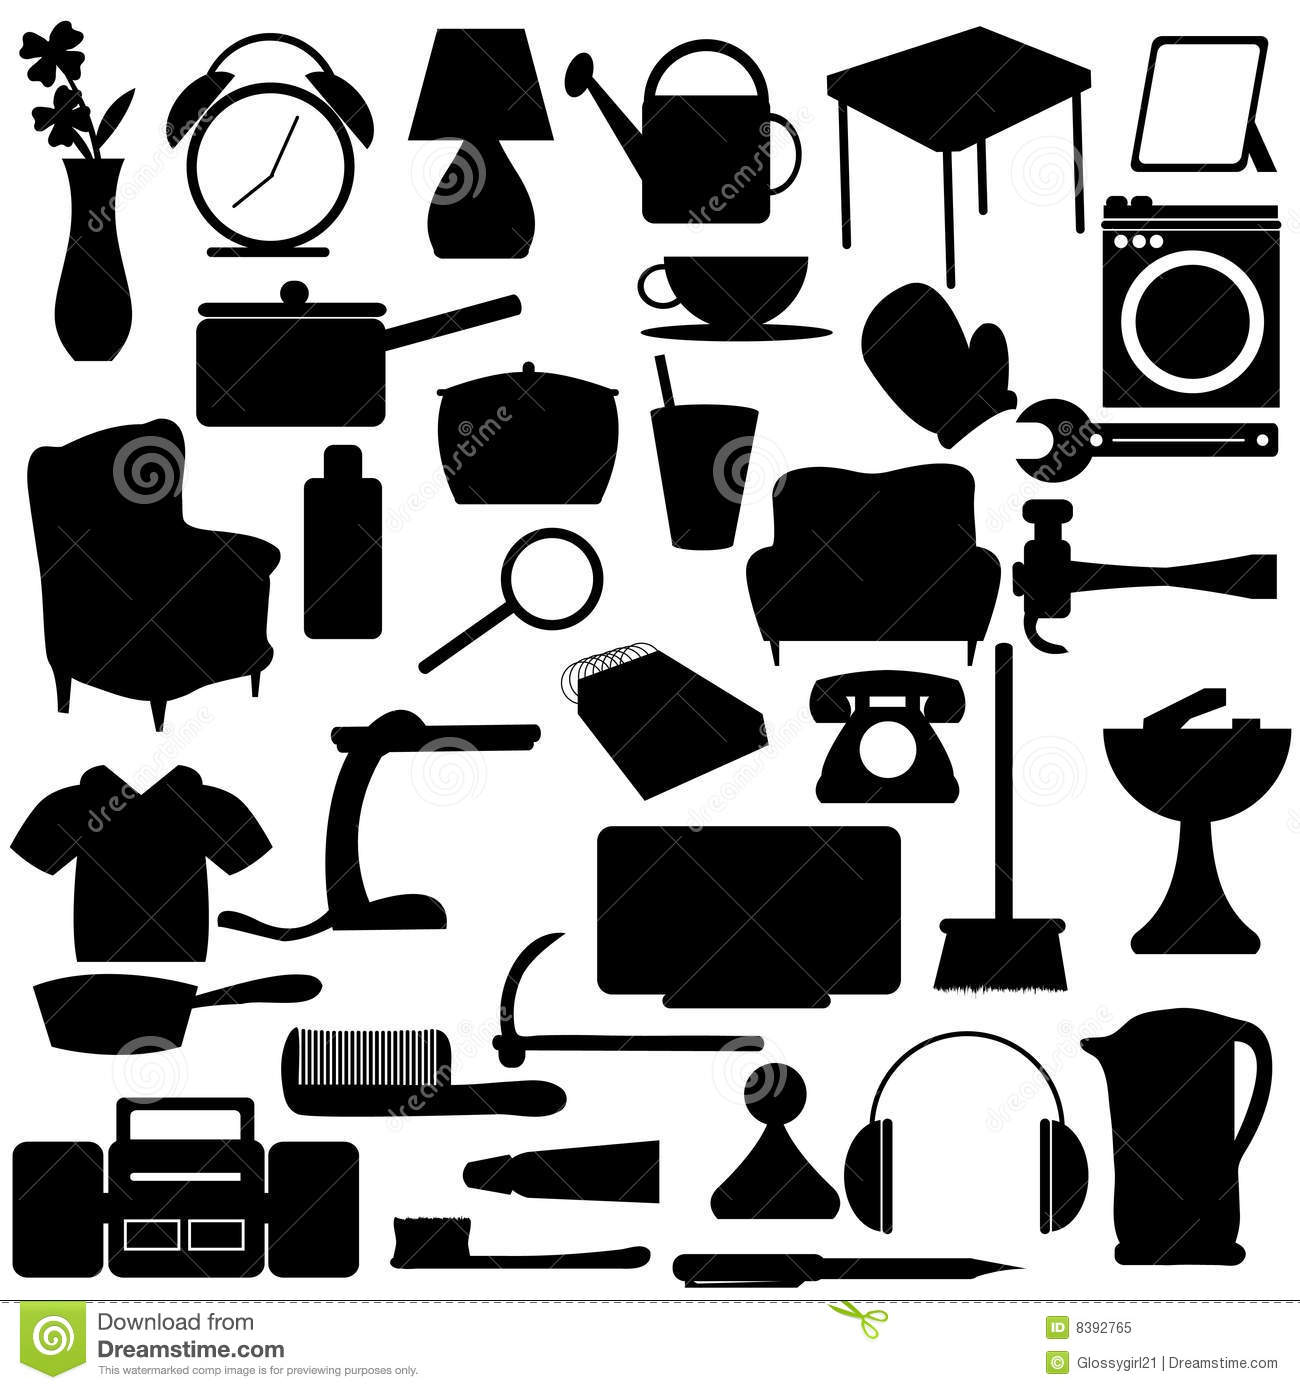 Household silhouettes items royalty free stock photo for Other uses for household items